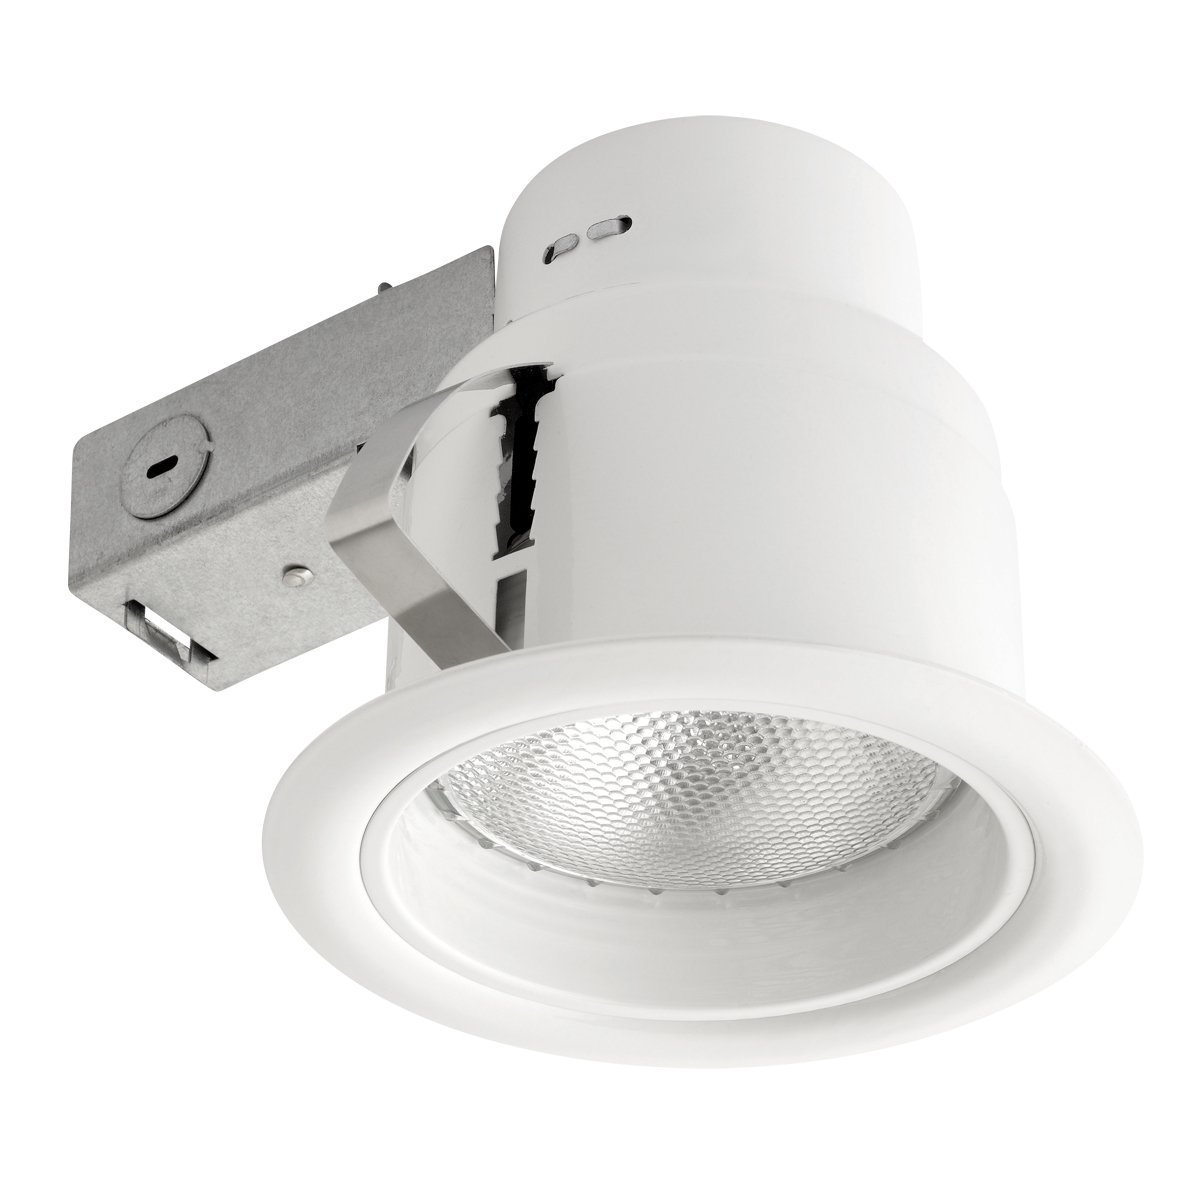 Globe Electric 4.5'' Rust Proof Indoor/Outdoor Recessed Lighting Kit, Dimmable Downlight, Ridged Baffle, White Finish, Easy Install Push-N-Click Clips, 90671